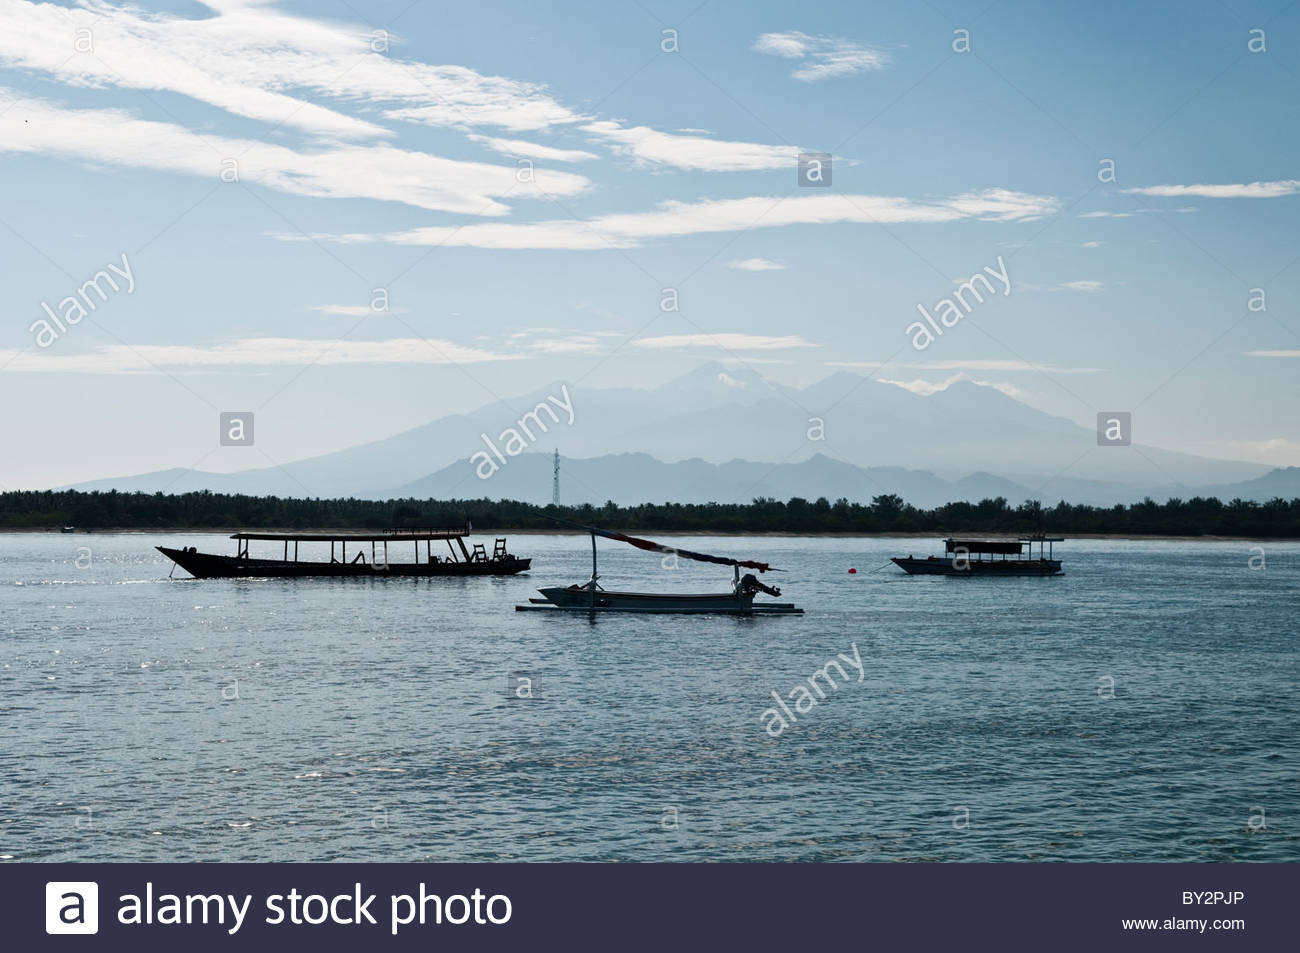 Anchored boats with Gunung Rinjani in the distance, Gili Trawangan, Indonesia. - Stock Image